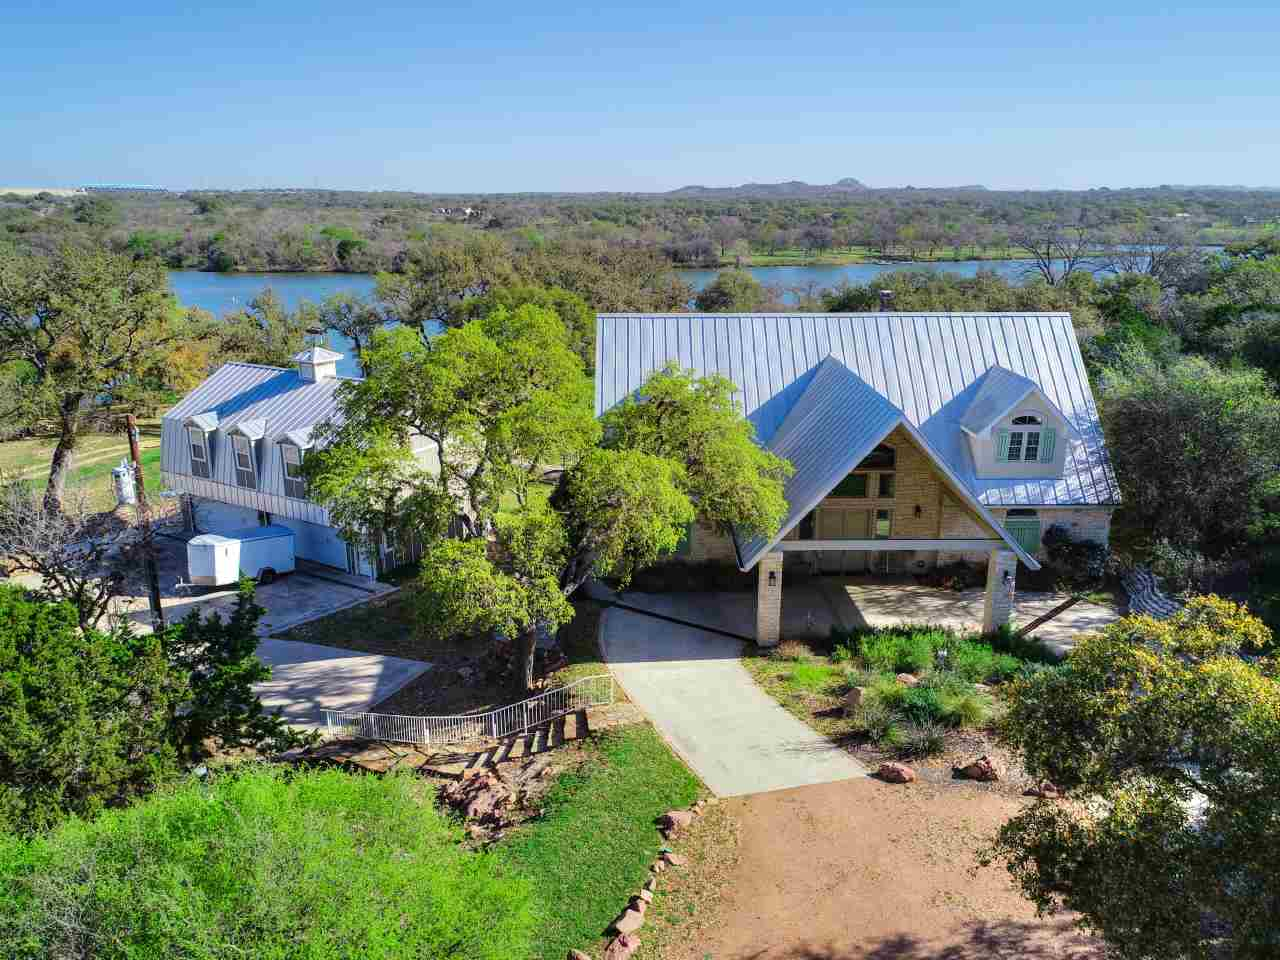 429 Del Mar Horseshoe Bay Real Estate Home Listings - RE/MAX Horseshoe Bay Resort Sales, Co. Lake LBJ Real Estate